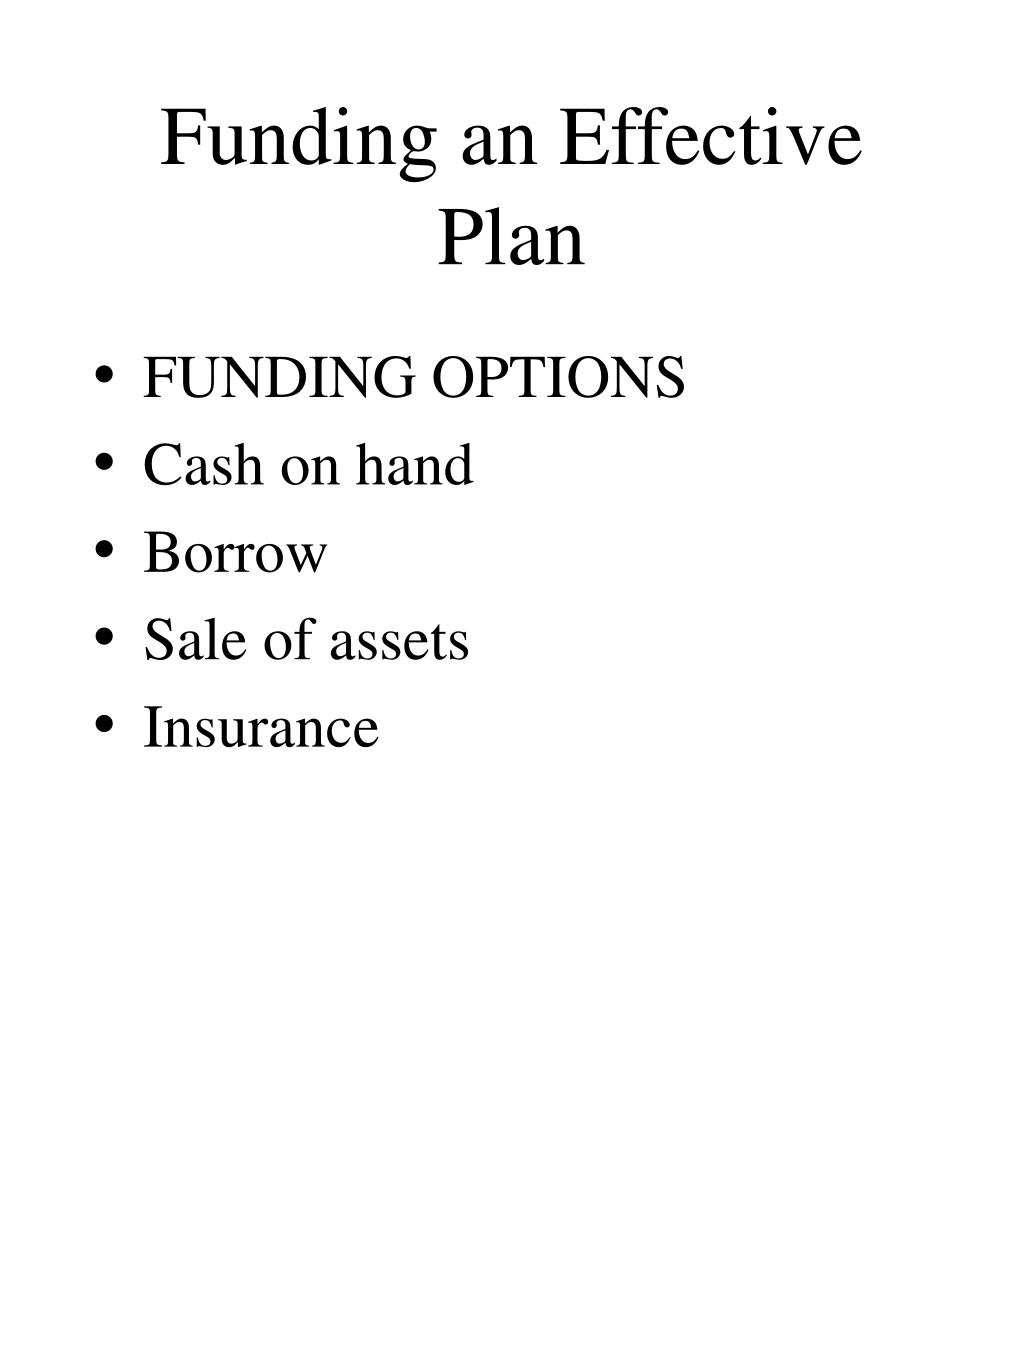 Funding an Effective Plan